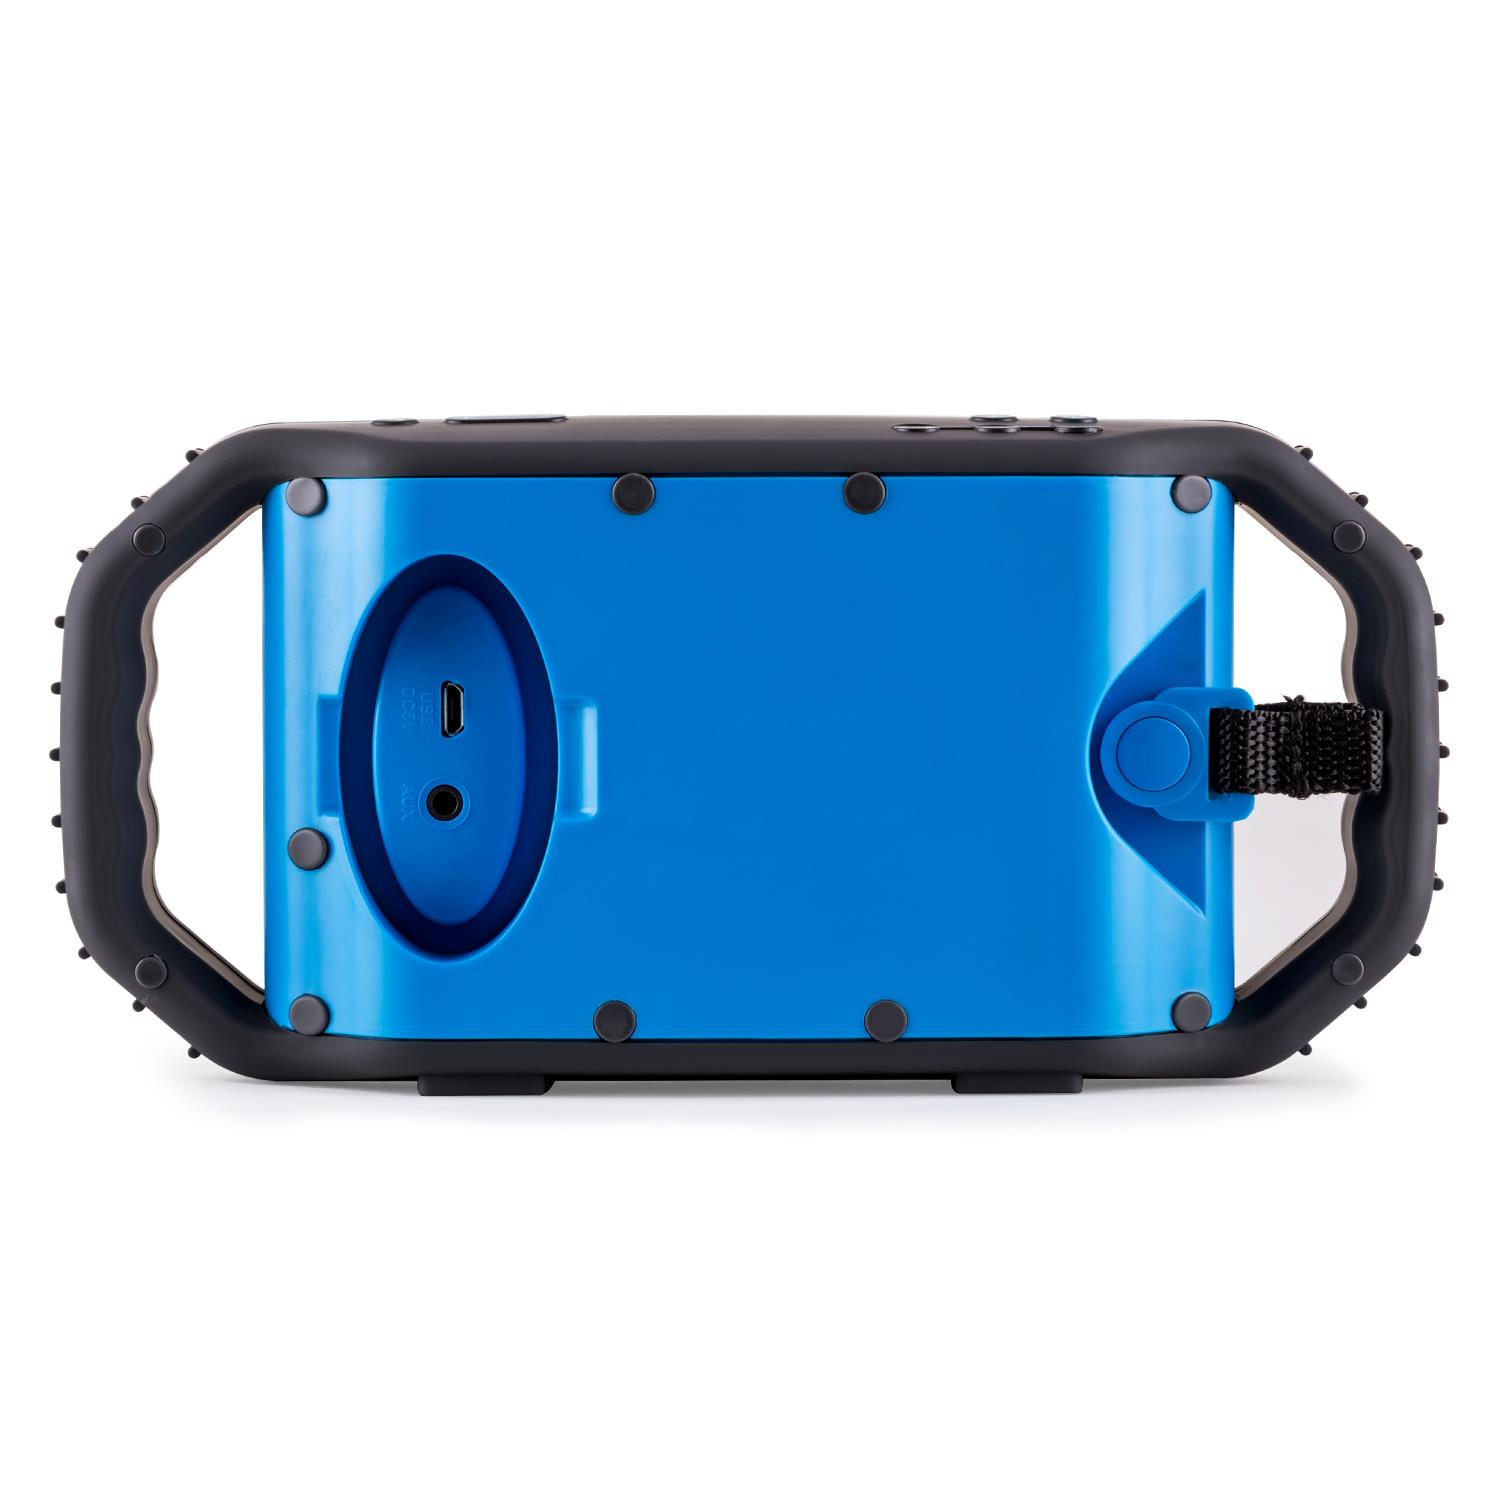 miniature 4 - ENCEINTE-NOMADE-SANS-FIL-BLUETOOTH-AUX-STREAMING-AUDIO-SMARTPHONE-TABLETTE-BLEU